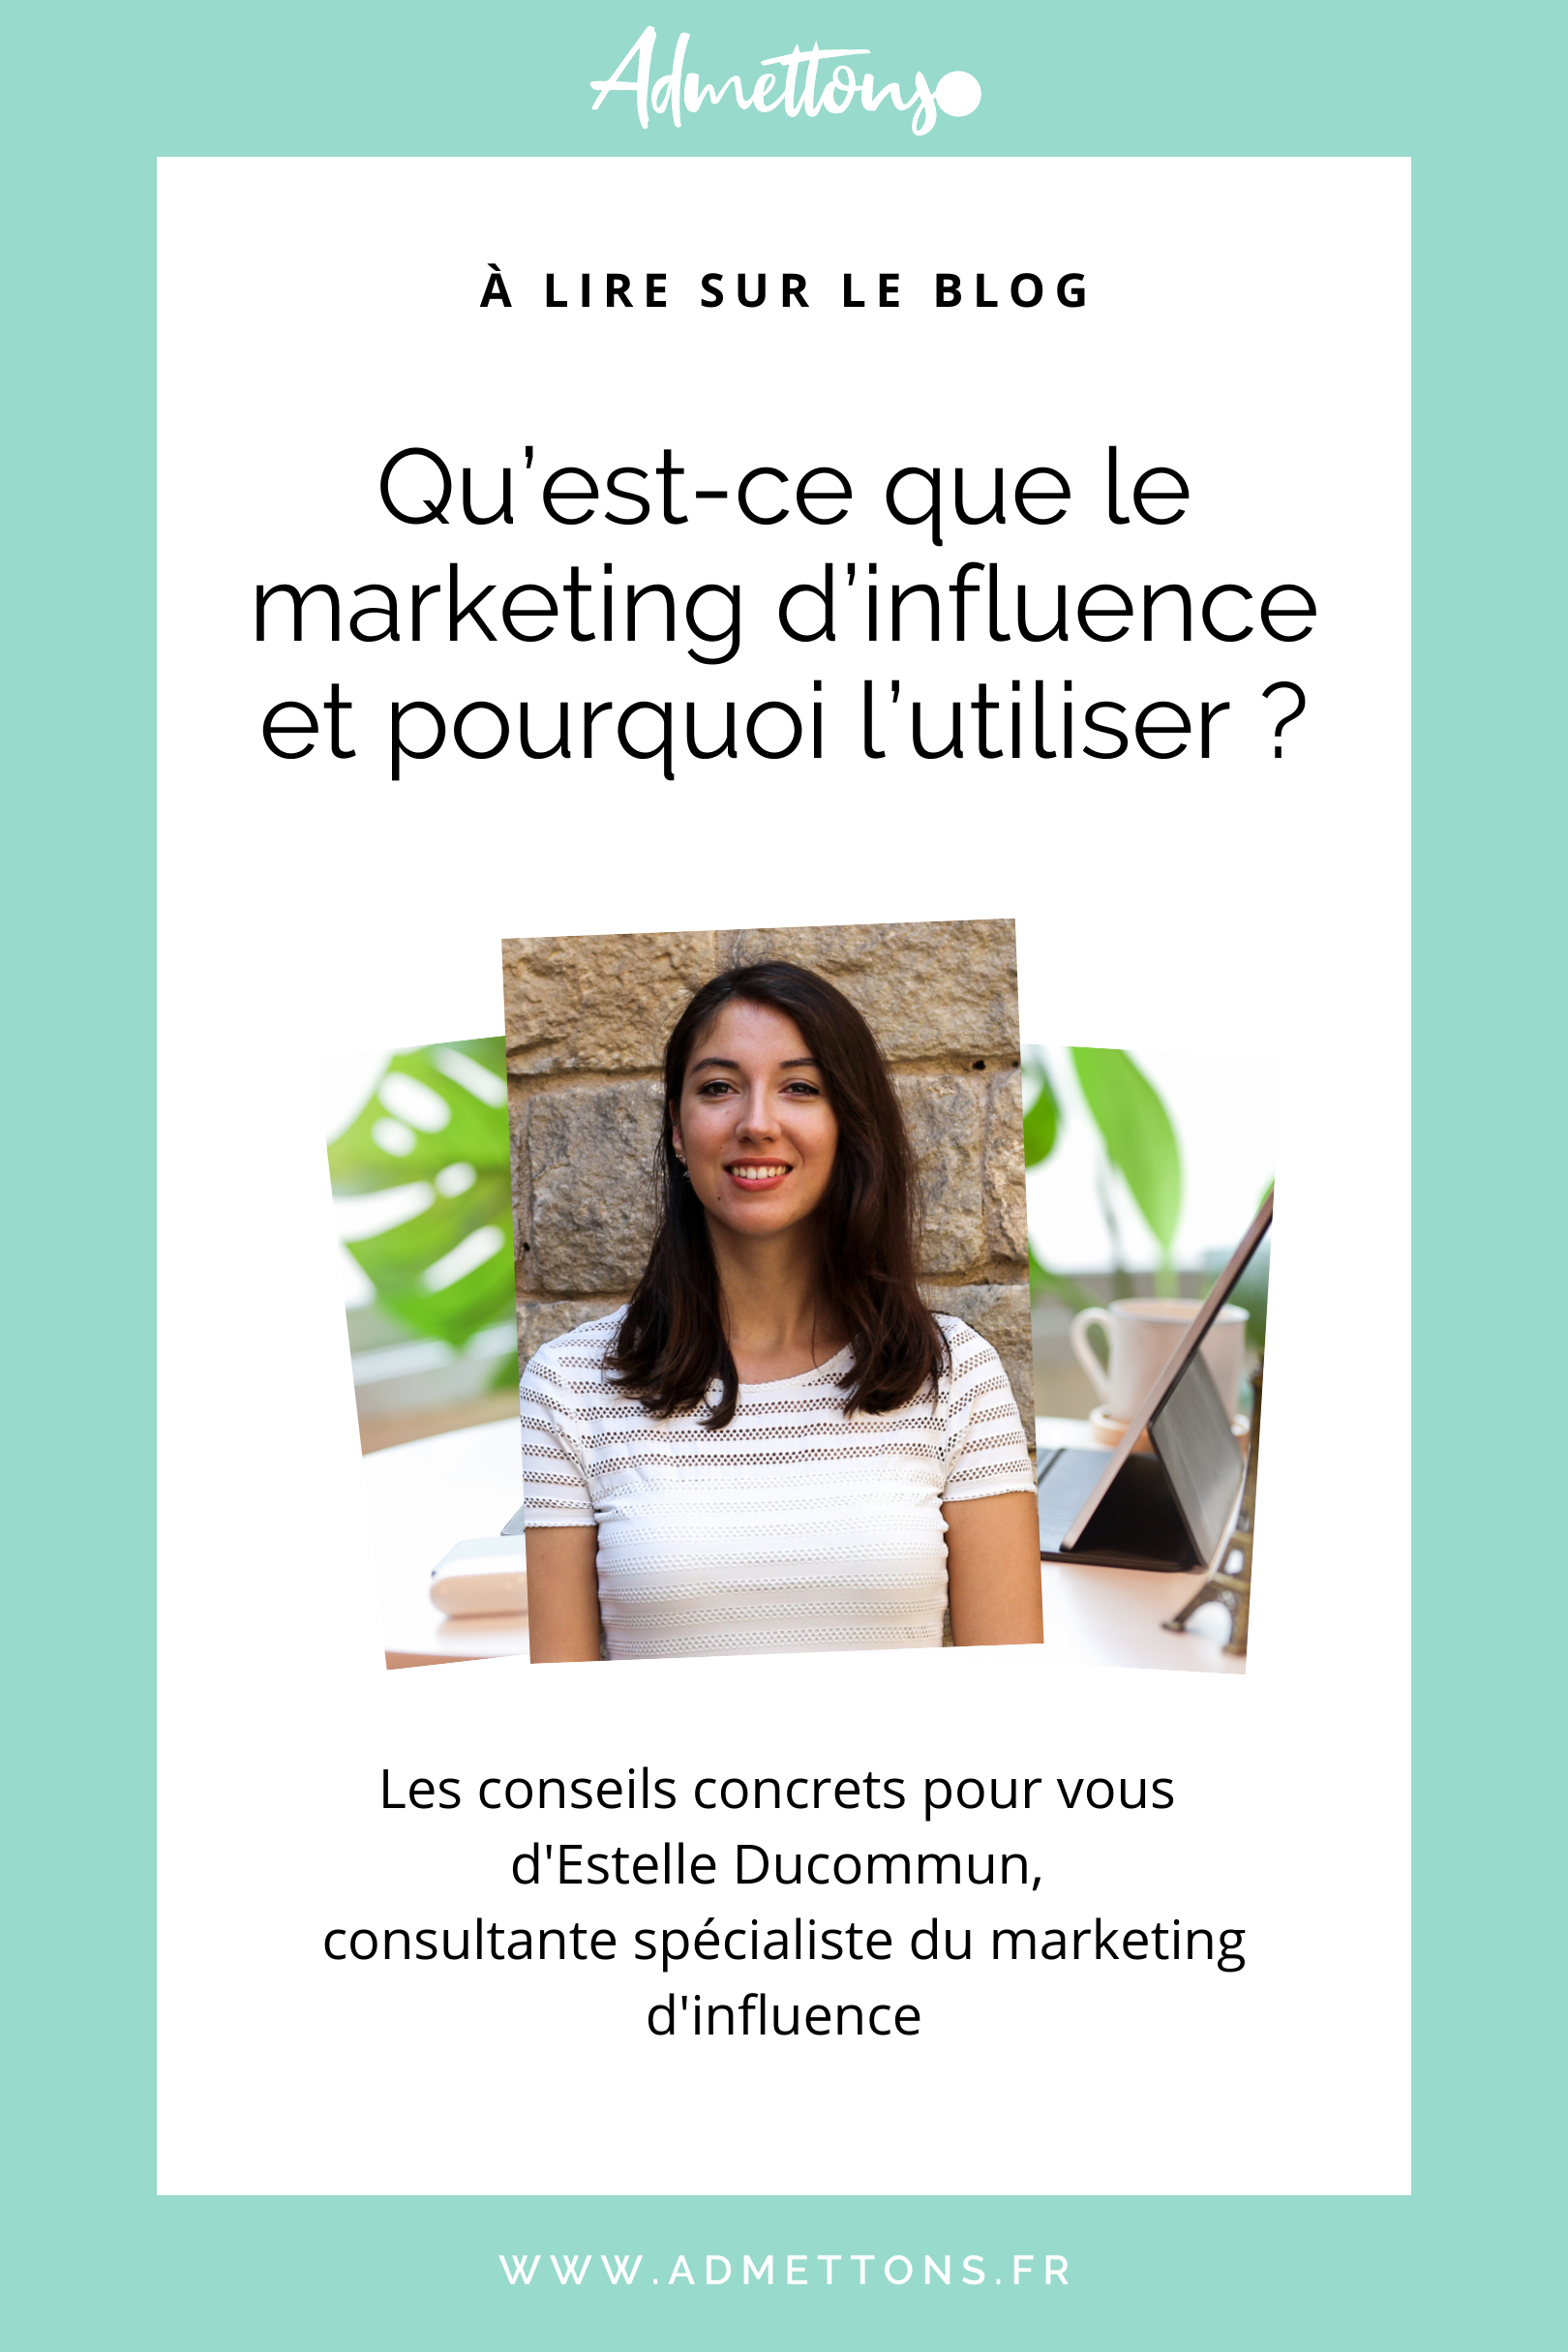 Le marketing d'influence : c'est quoi ?